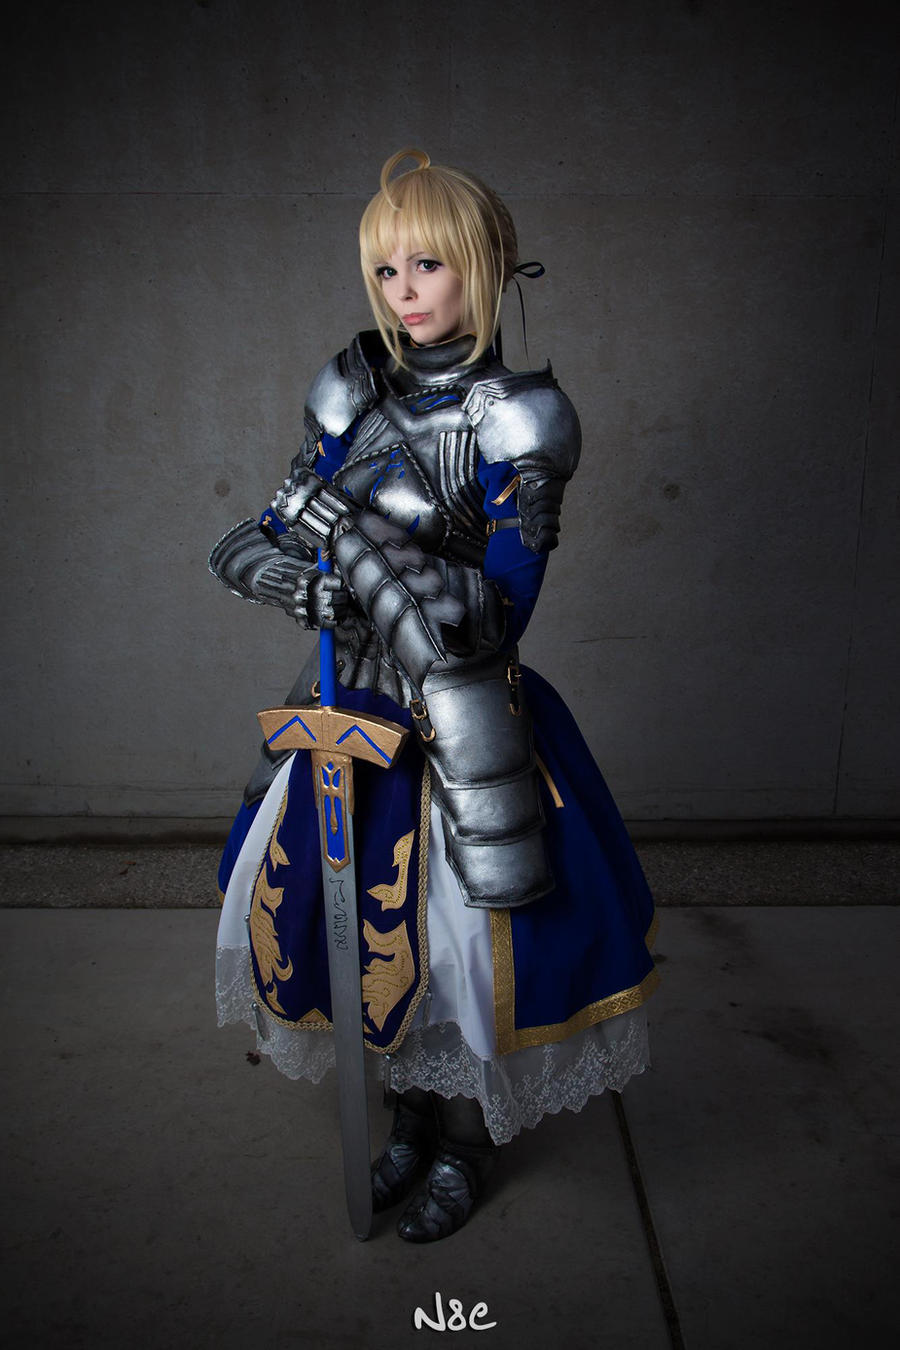 Fate/Stay Night - Saber (Gift version) by Calssara